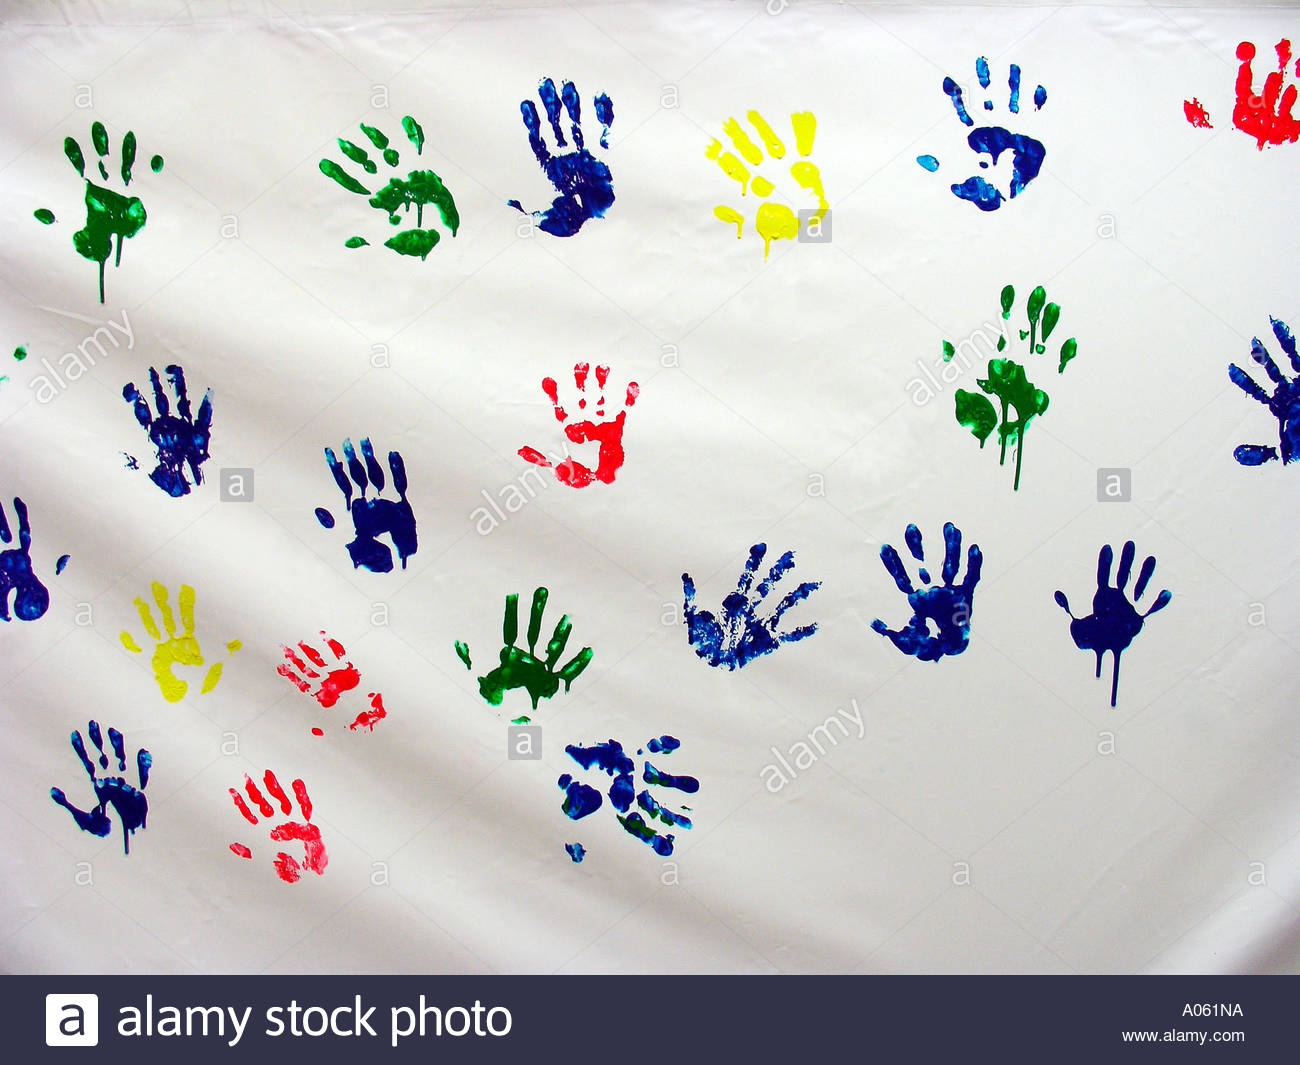 Hand print painting - Stock Image